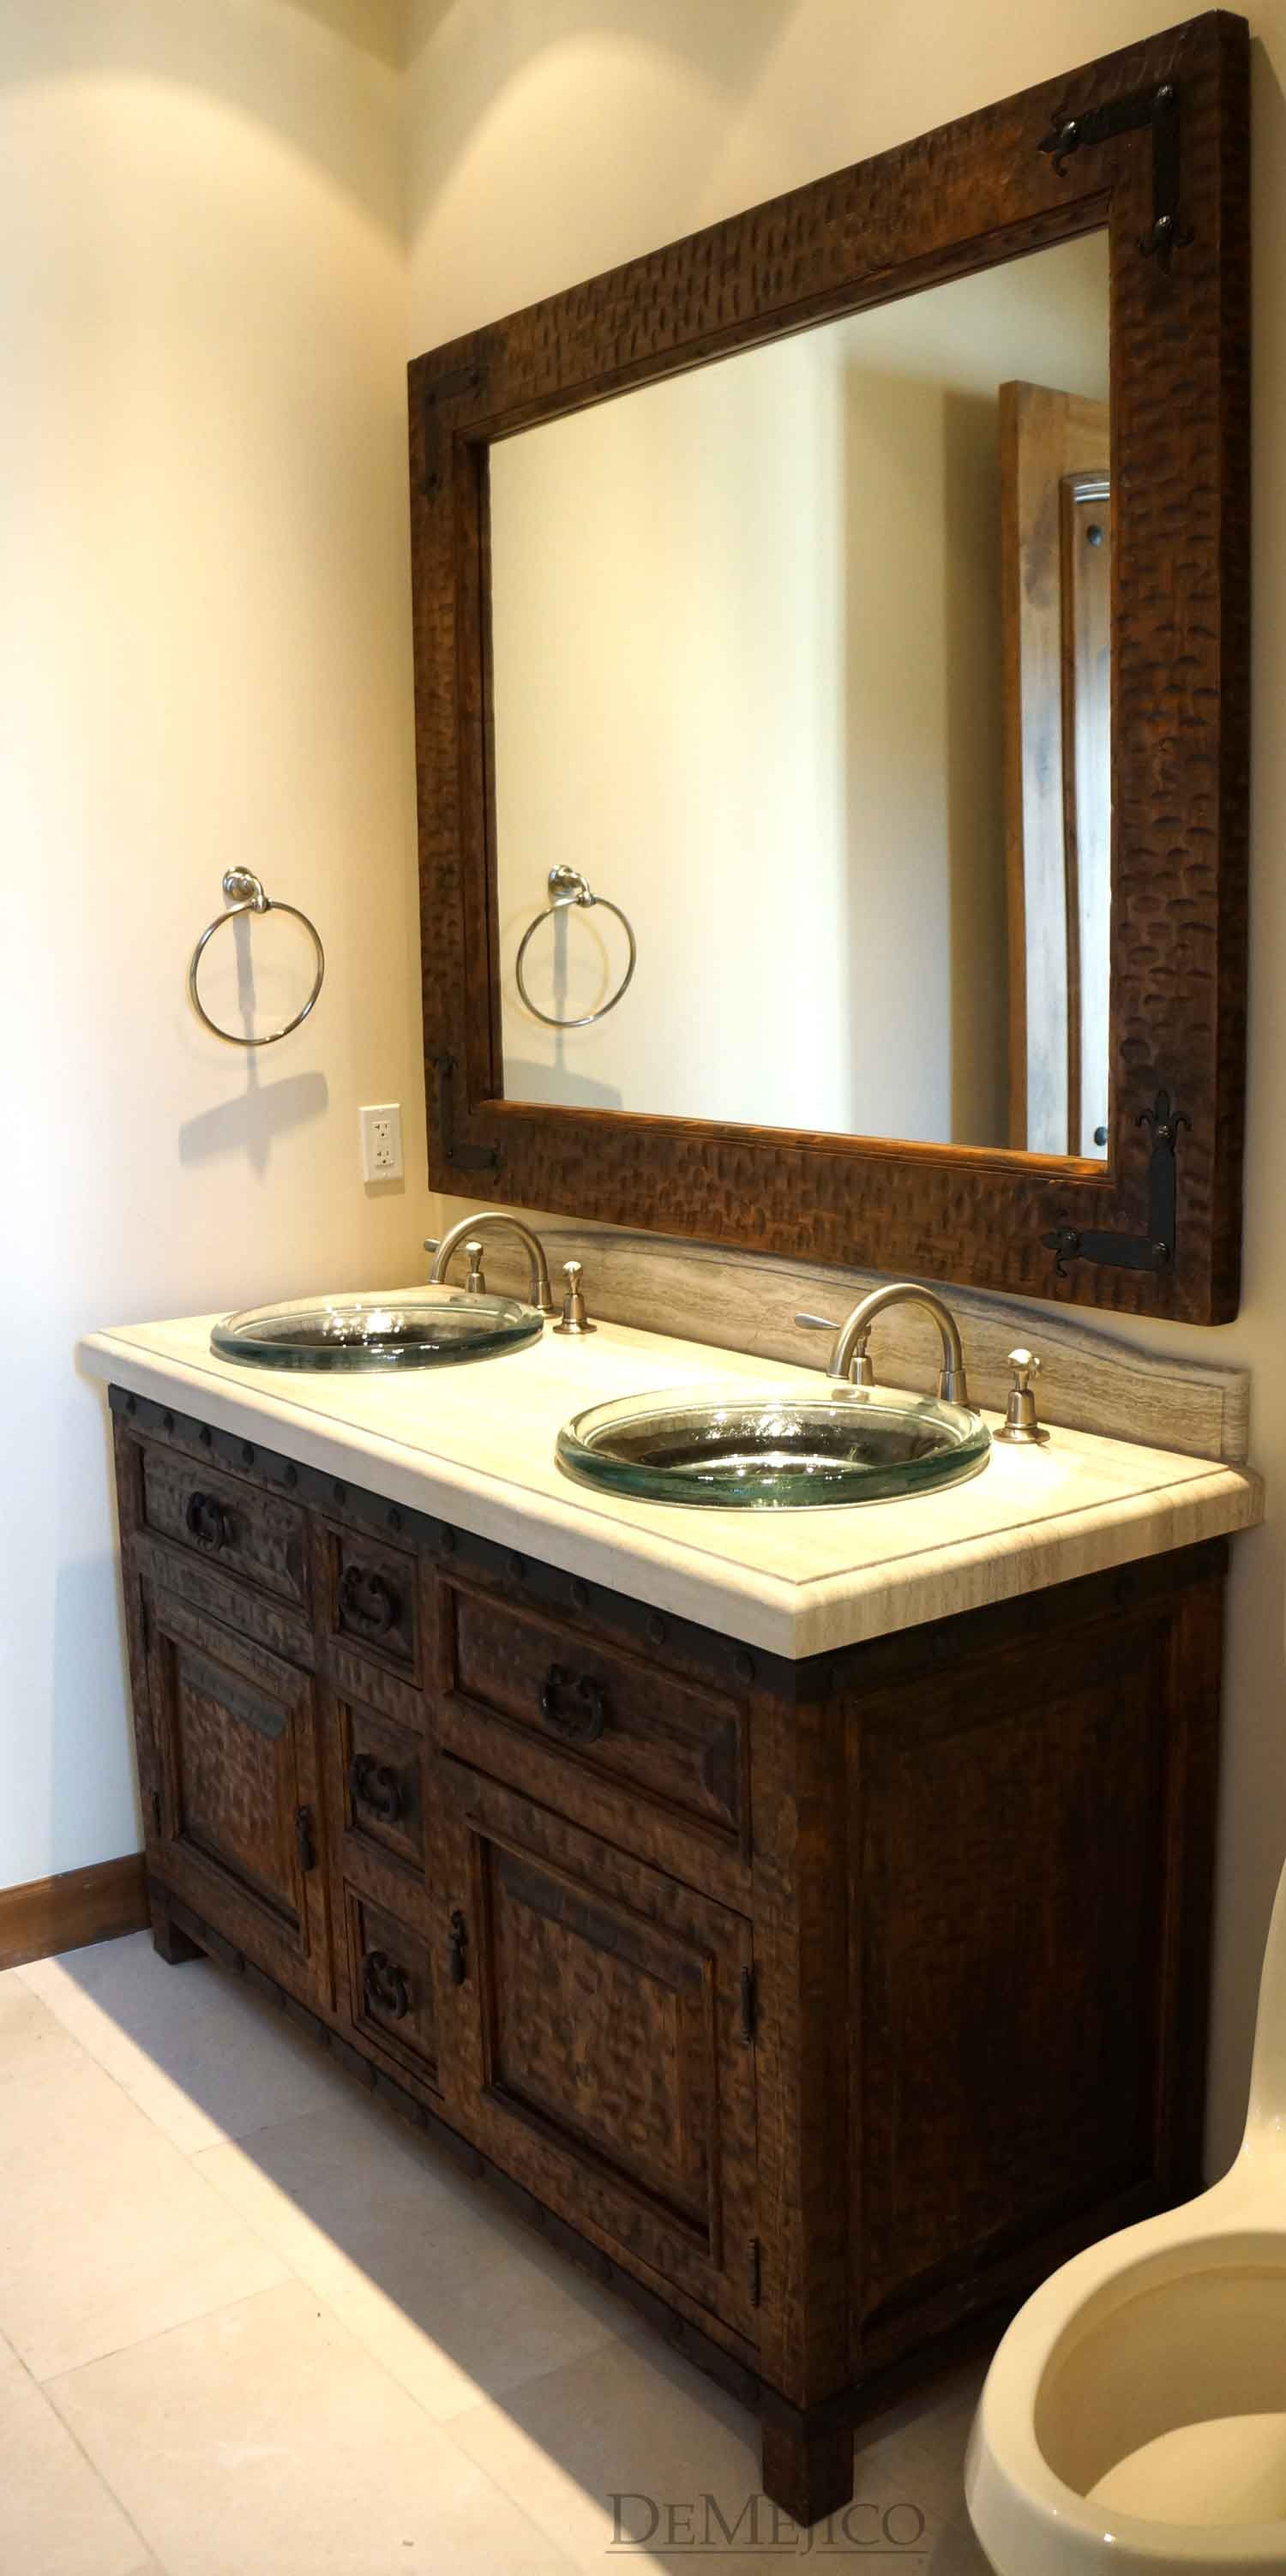 Alamo Style Bathroom Vanity And Mirror Hand Carved From Alder Wood With A Smooth